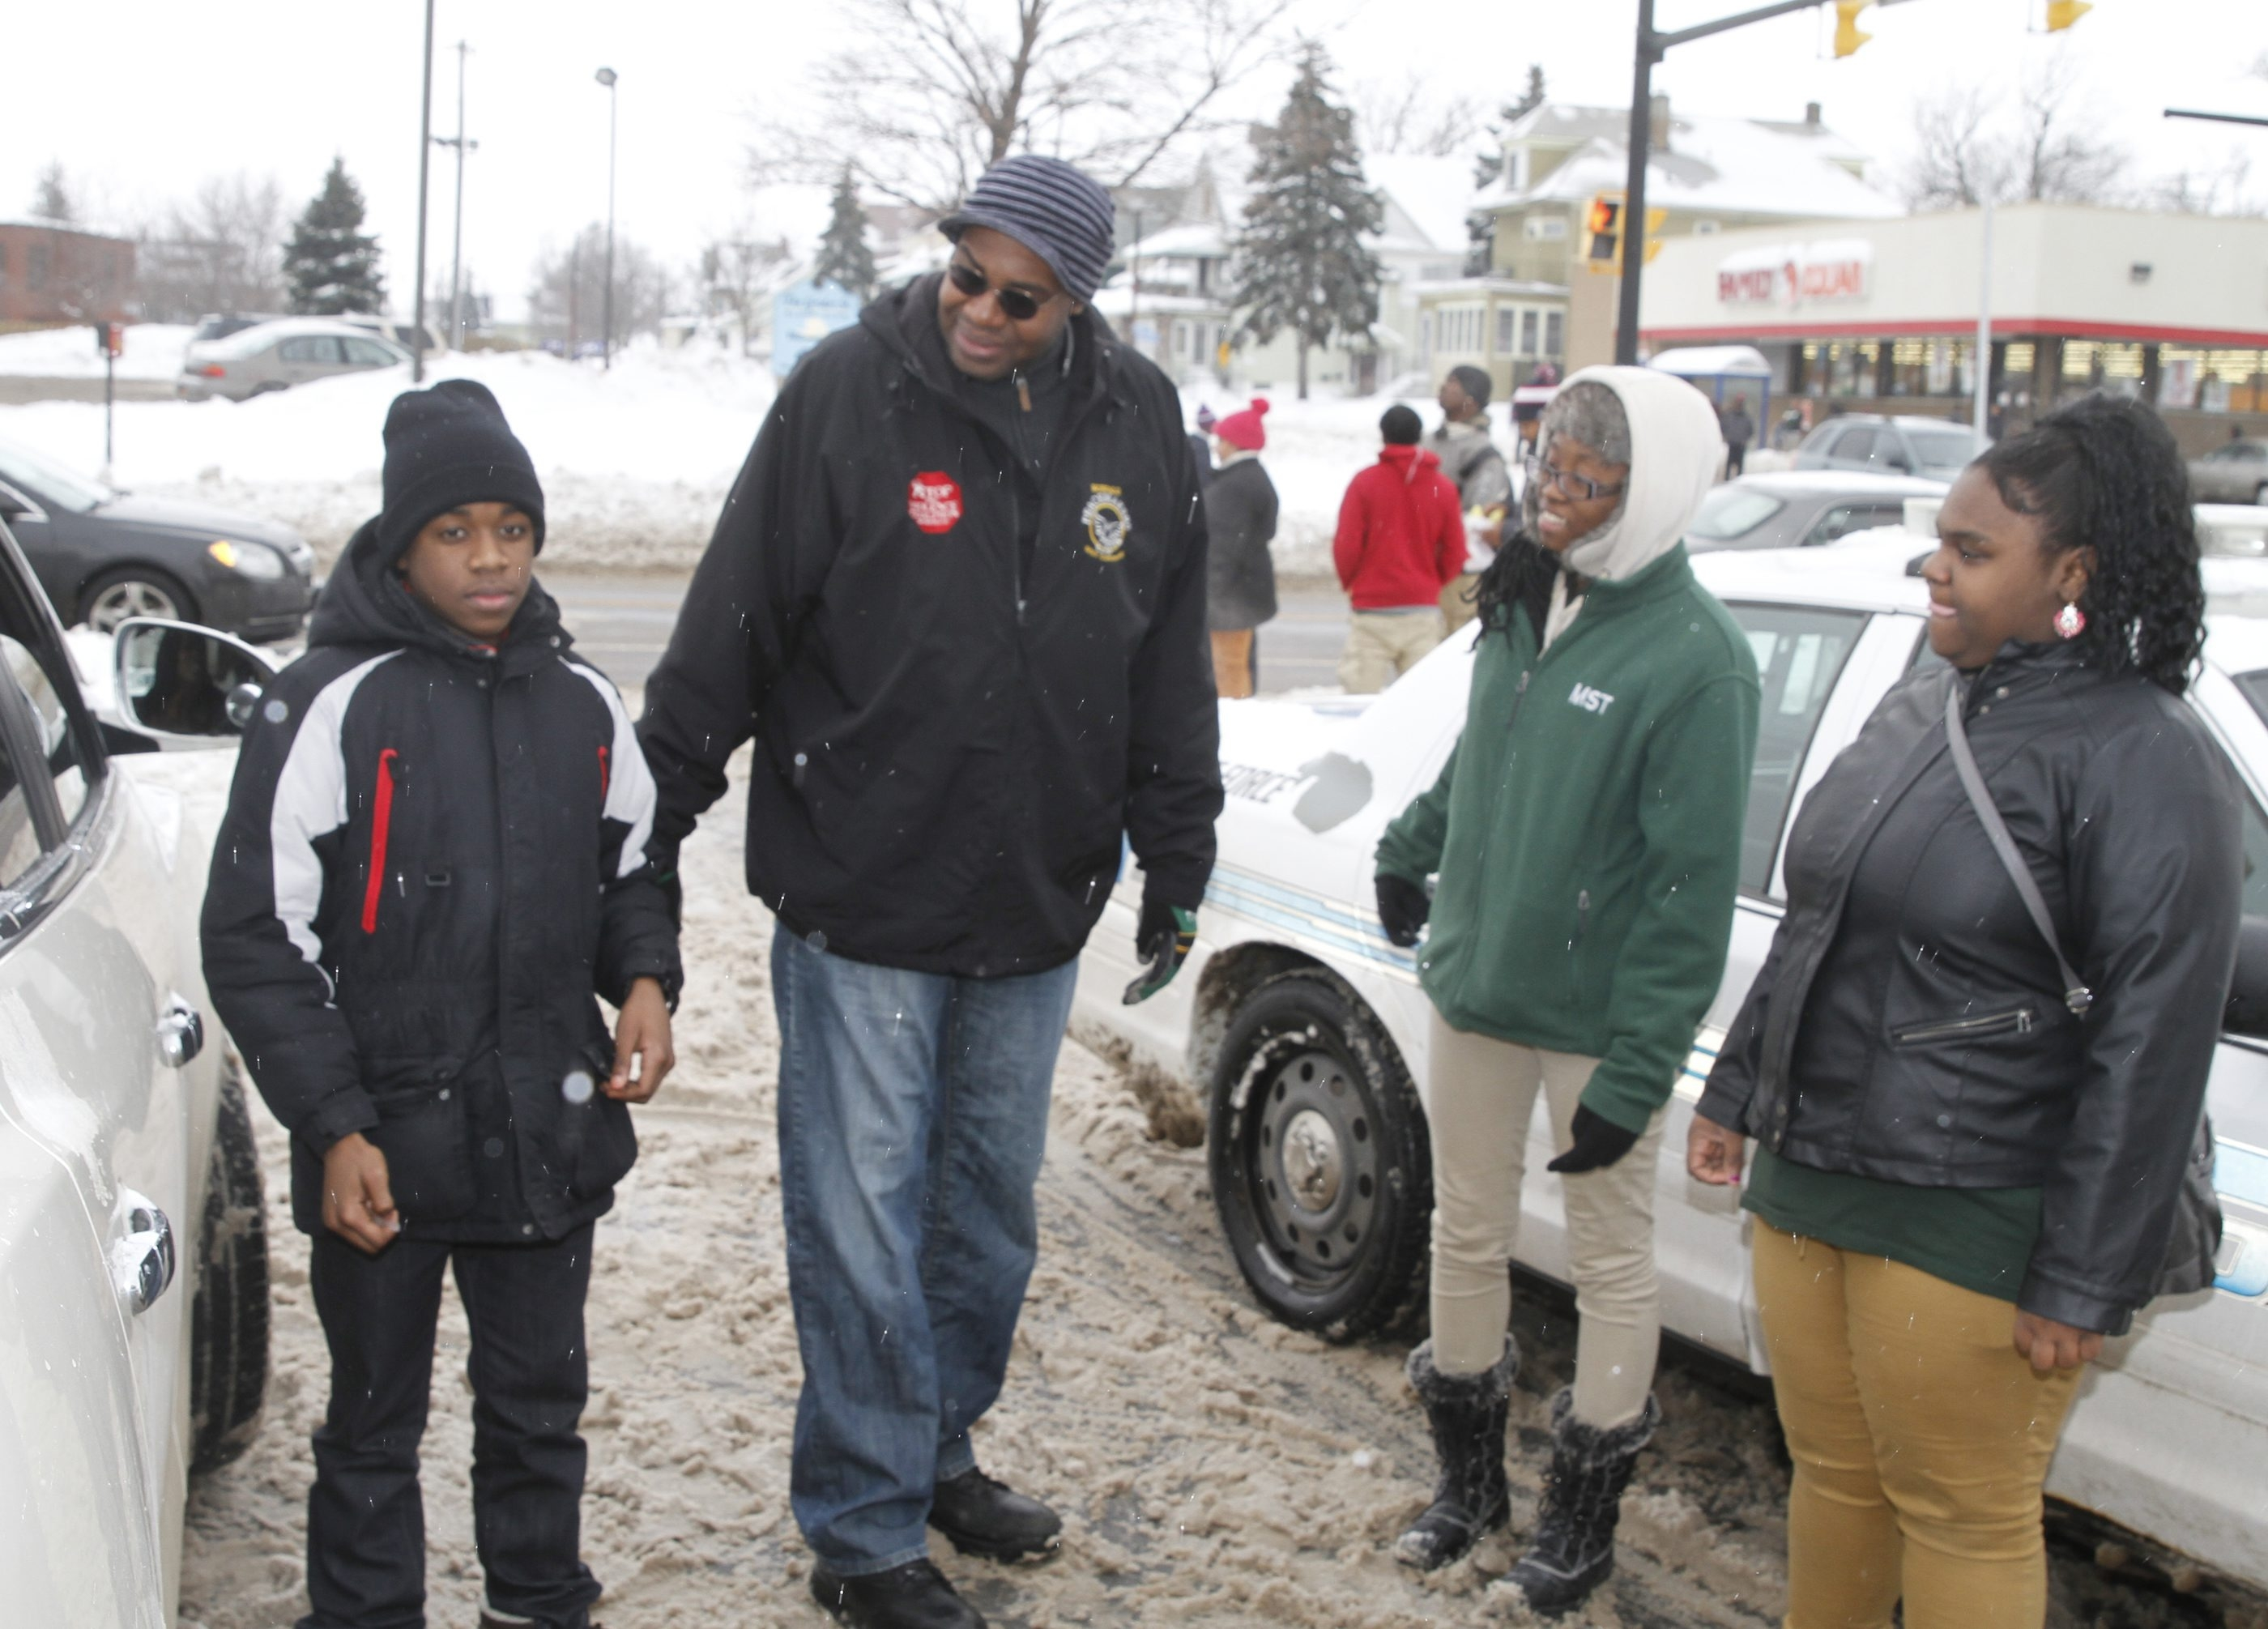 Murray Holman, executive director of Stop the Violence Coalition, talks with students at the corner of East Delavan and Grider.